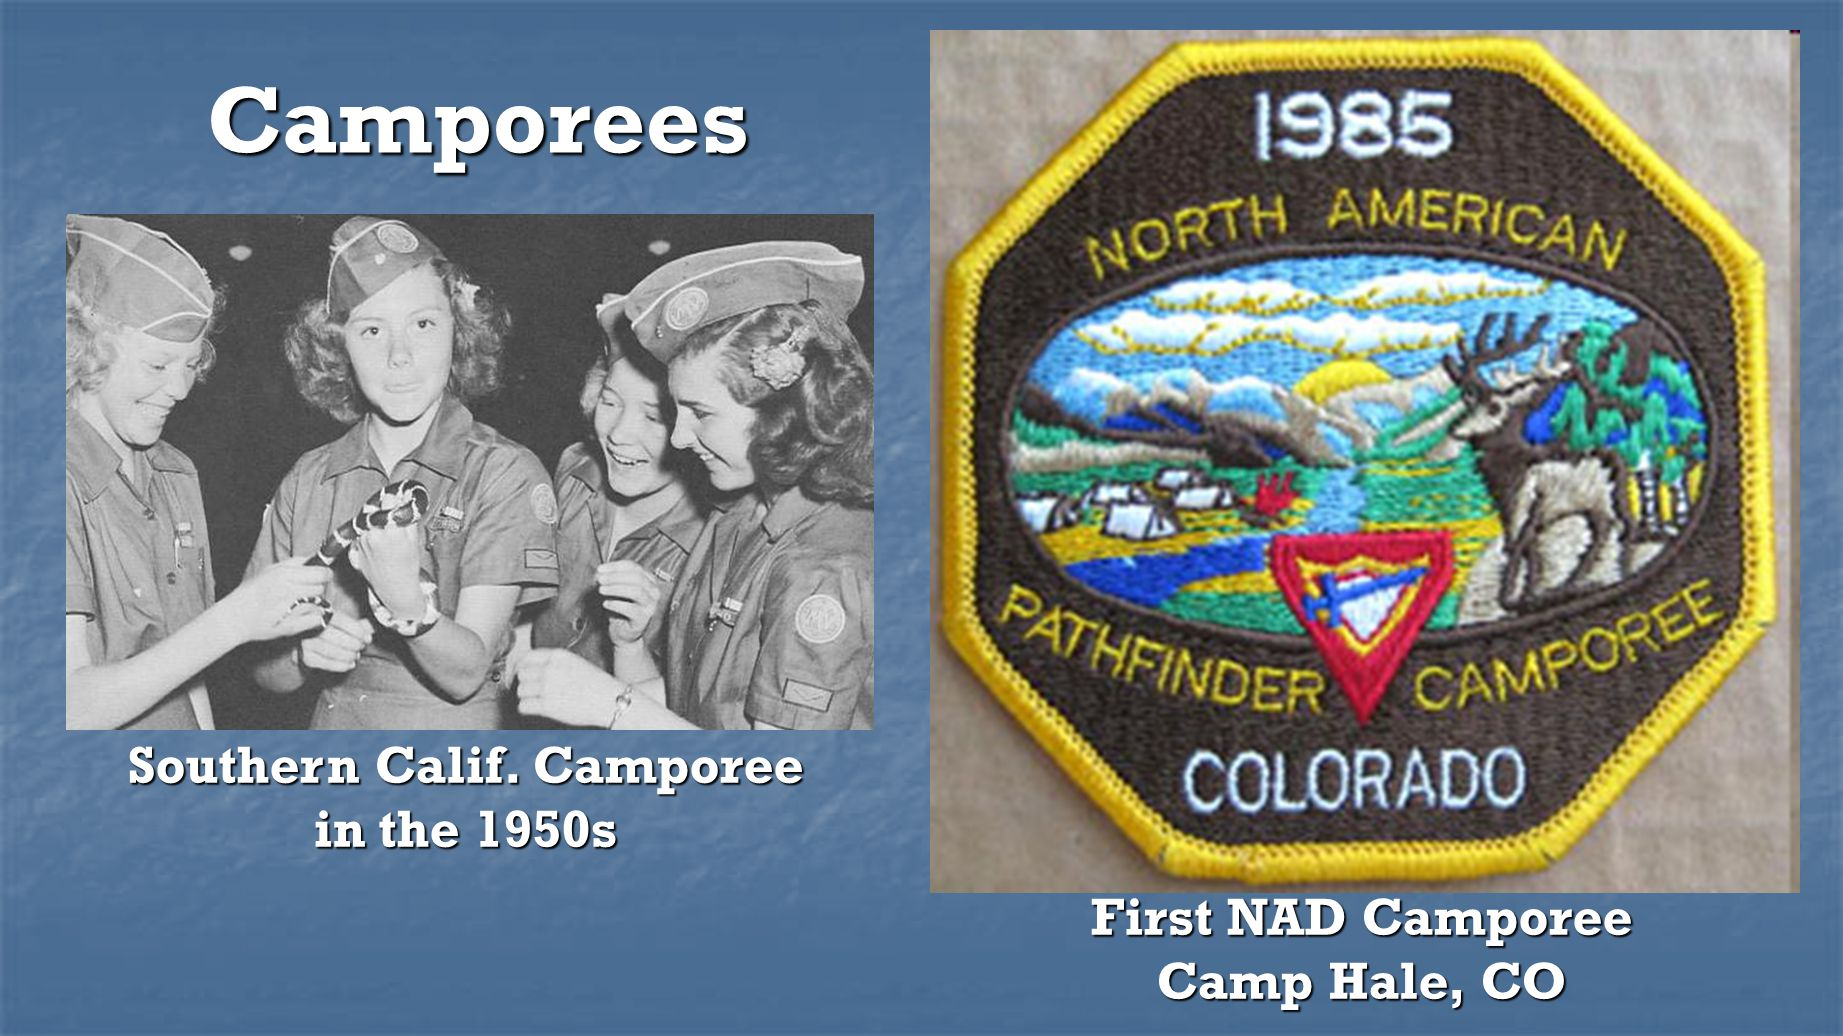 Southern Calif. Camporee in the 1950s First NAD Camporee Camp Hale, CO